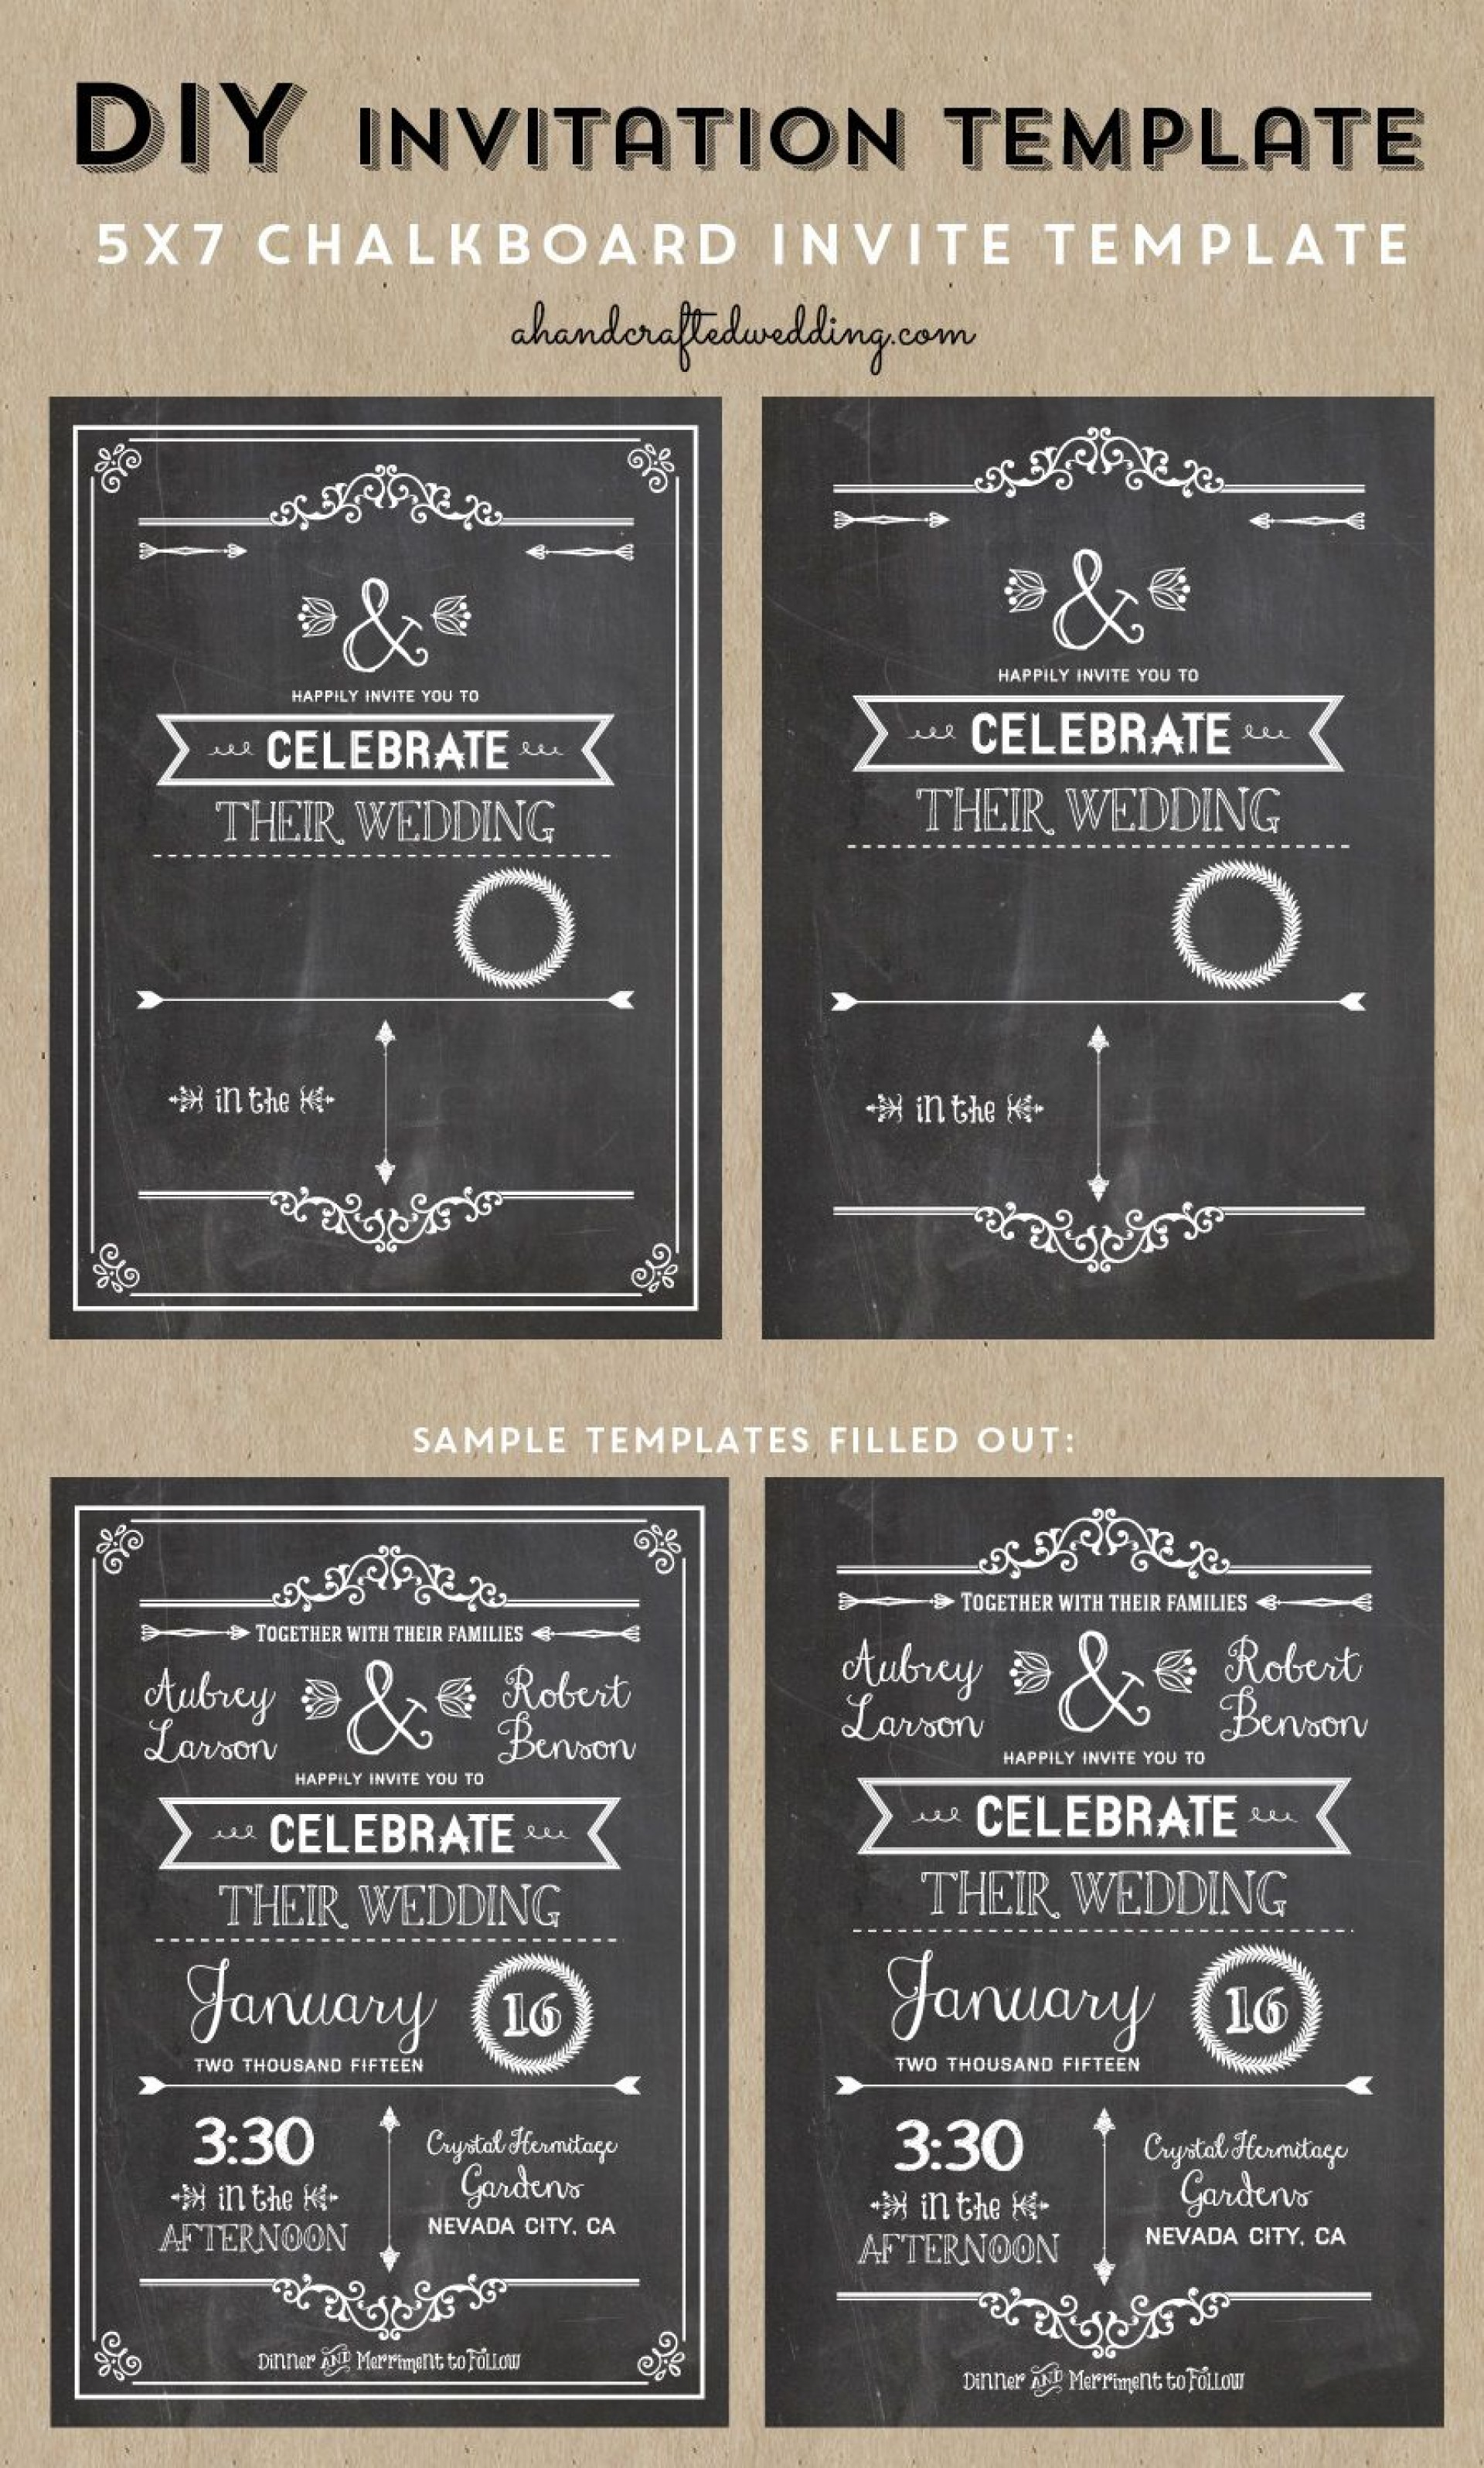 005 Wondrou Chalkboard Invitation Template Free Picture  Download Wedding1920